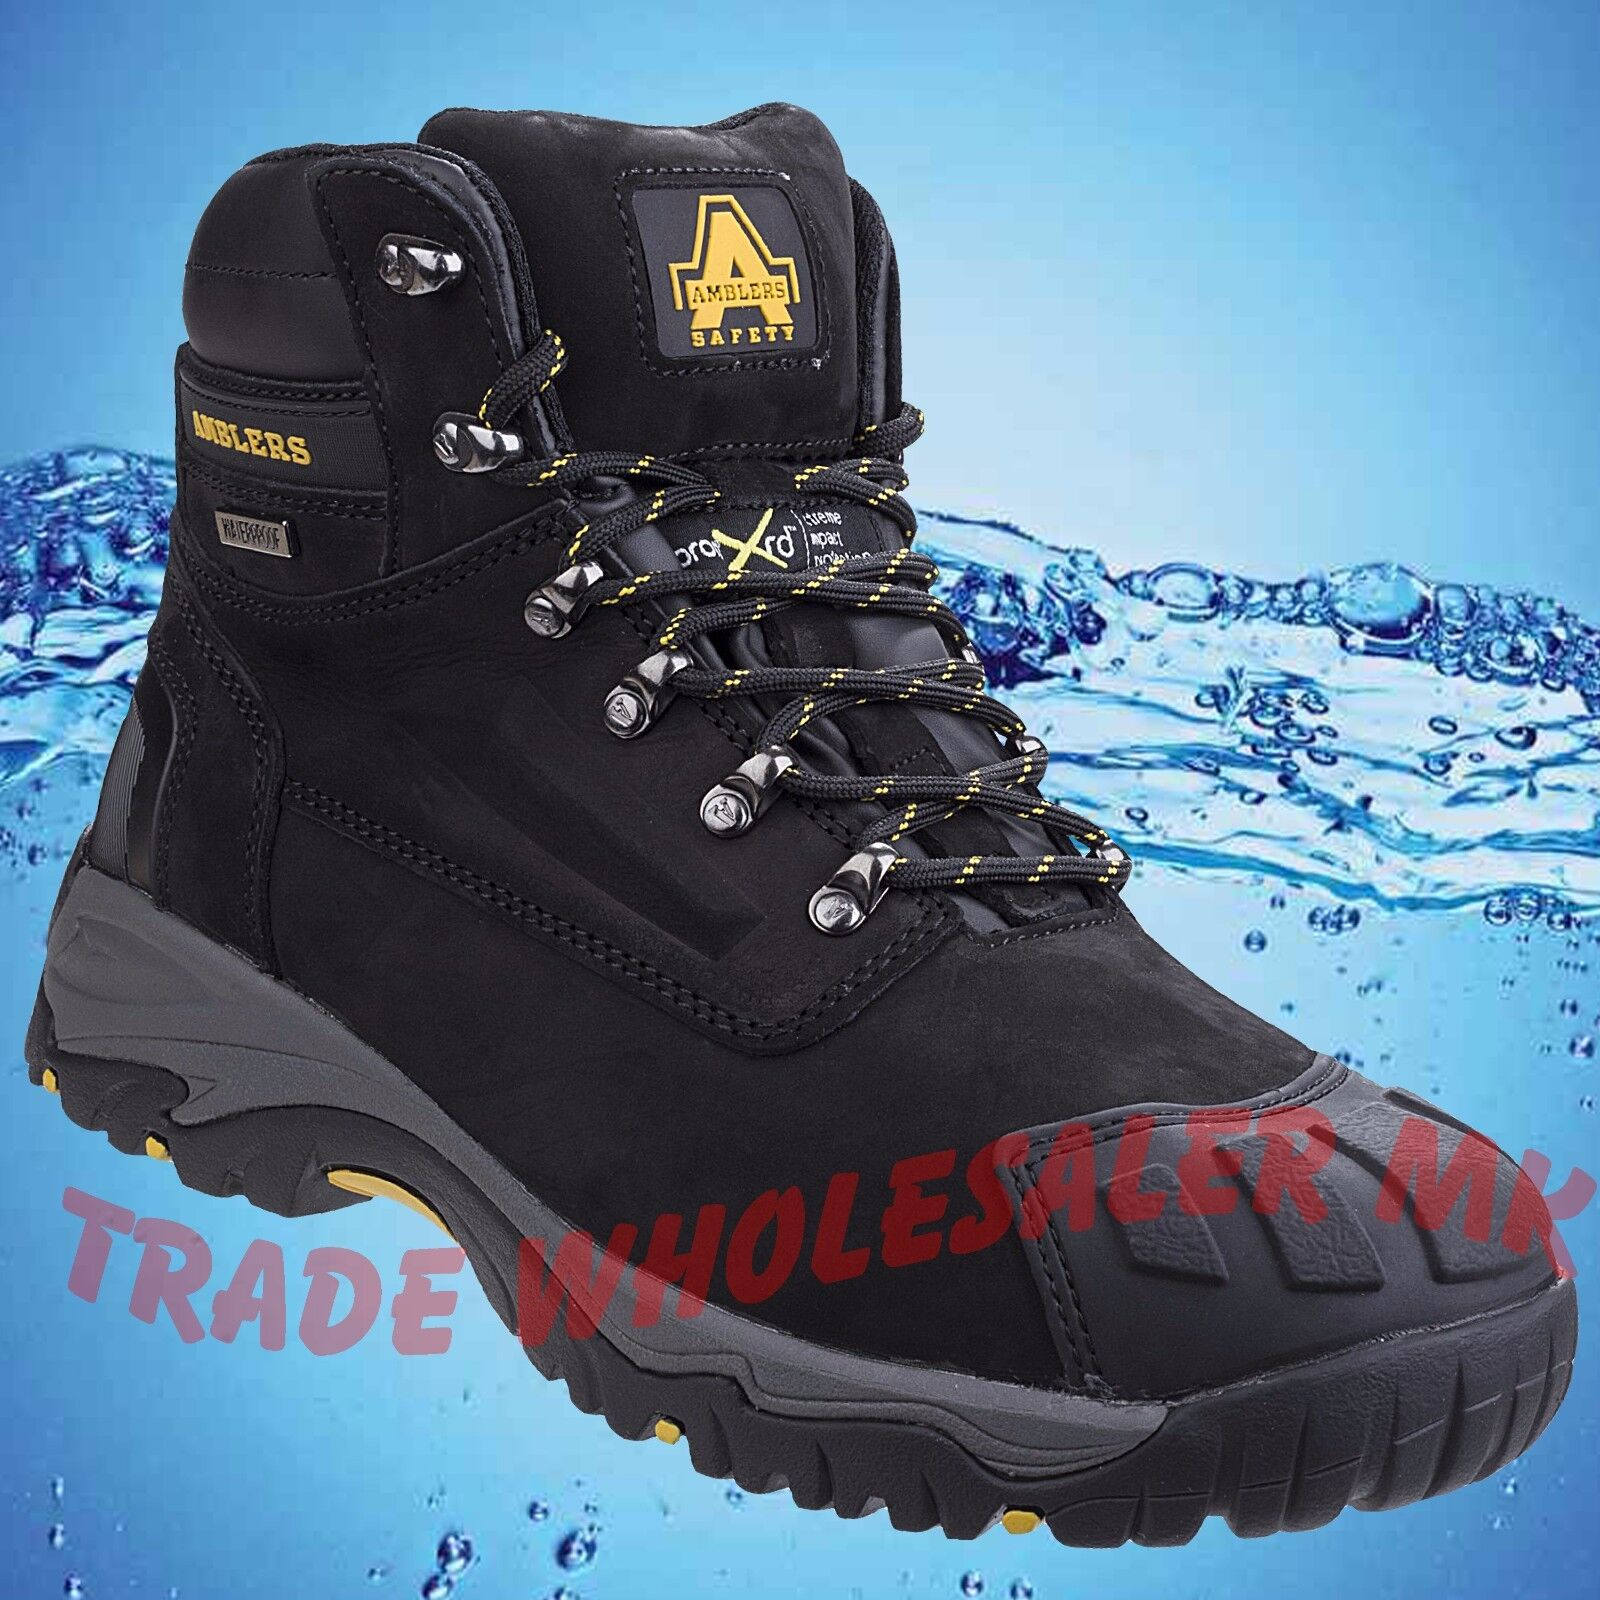 MENS WATERPROOF SAFETY BOOTS Amblers Steel Toecap SAFETY FS987